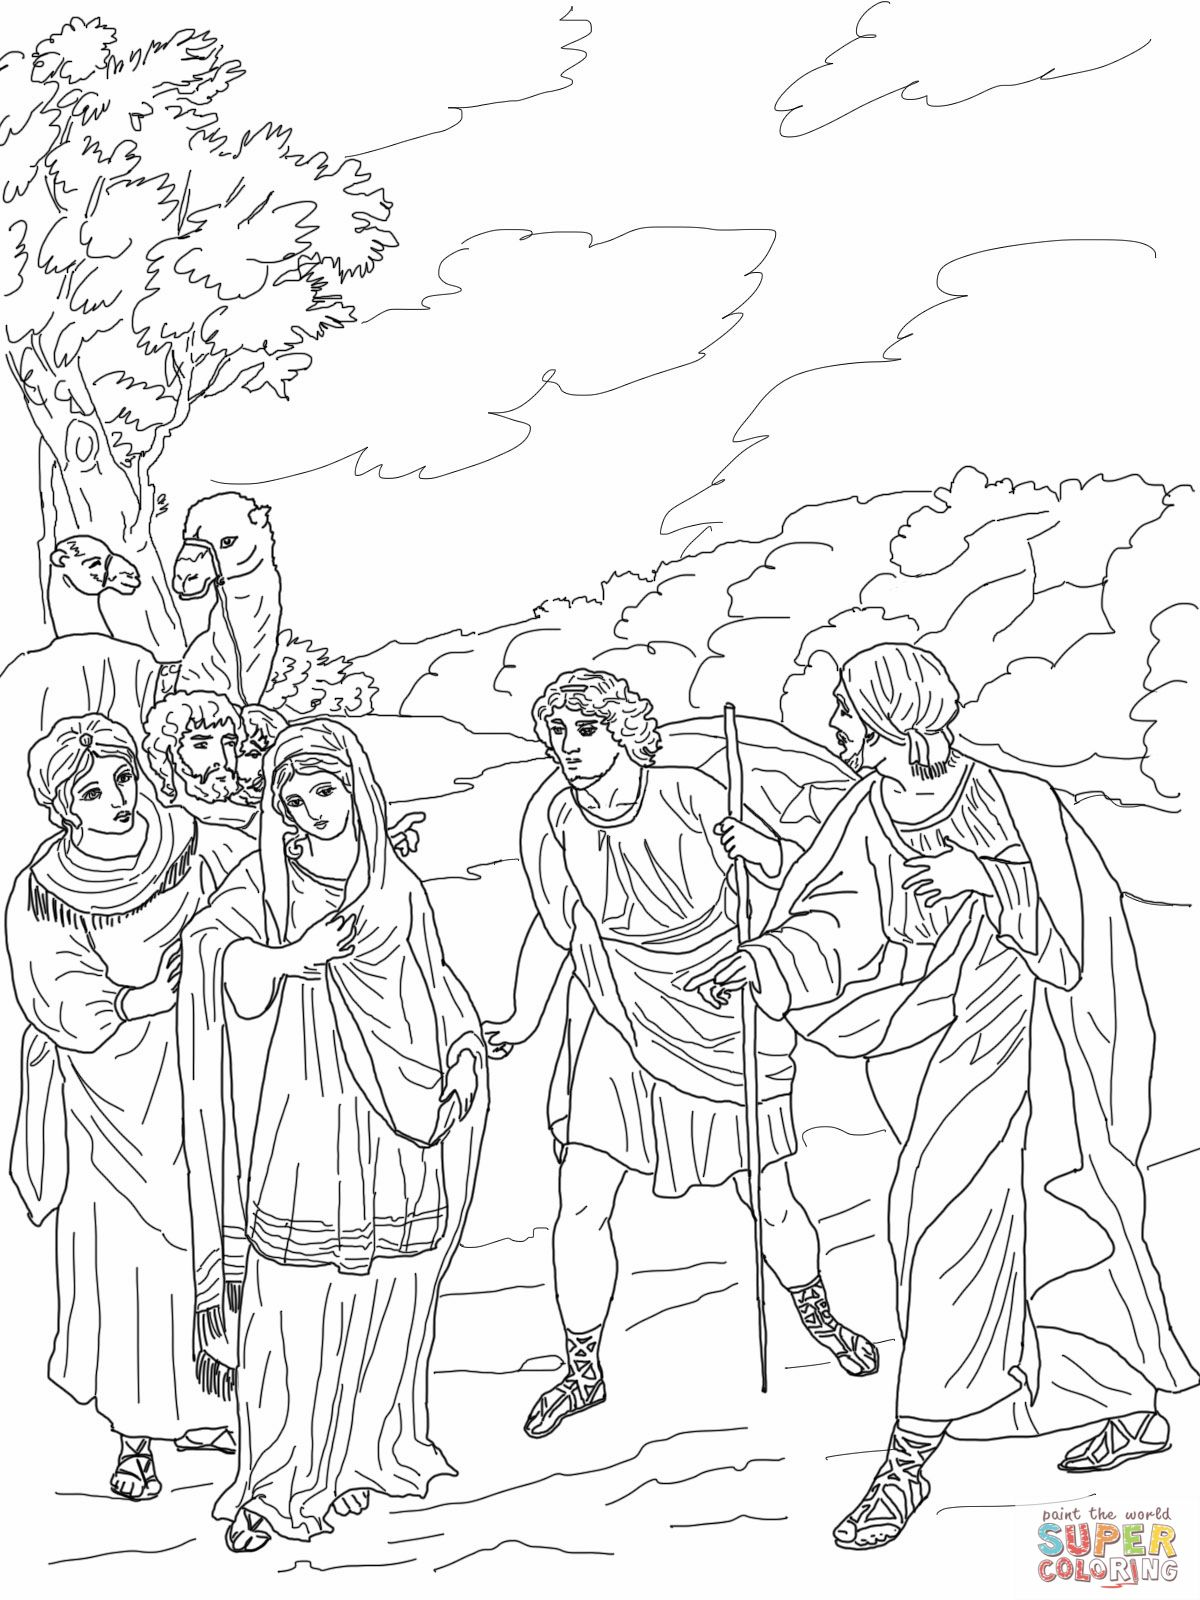 Isaac First Meets Rebekah Coloring Pages Coloring Book Art Cute Coloring Pages